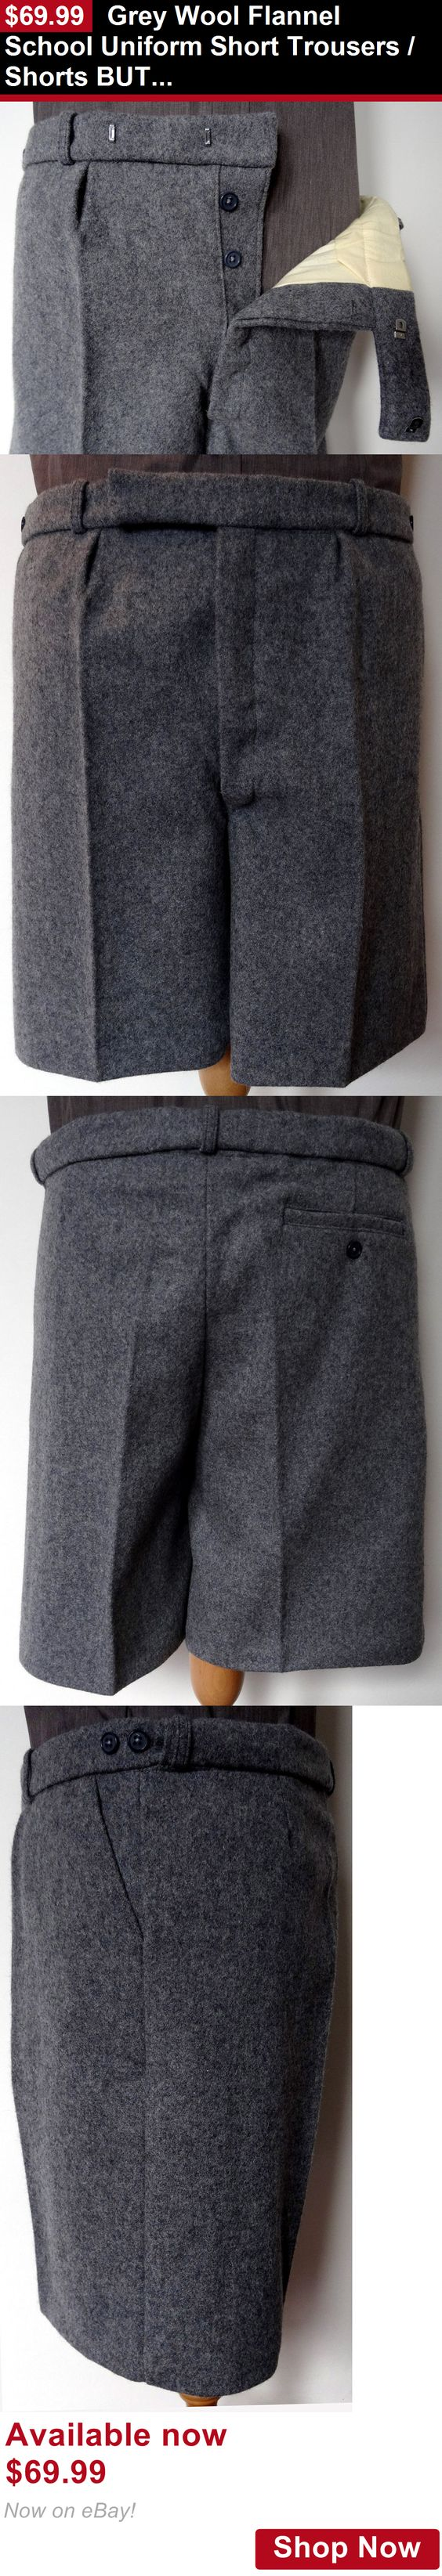 I don't think any school in the UK insists on short trousers to 18 years, but several prep schools require shorts to 13 years. At least one school on a web site has a grey short trouser suit uniform.